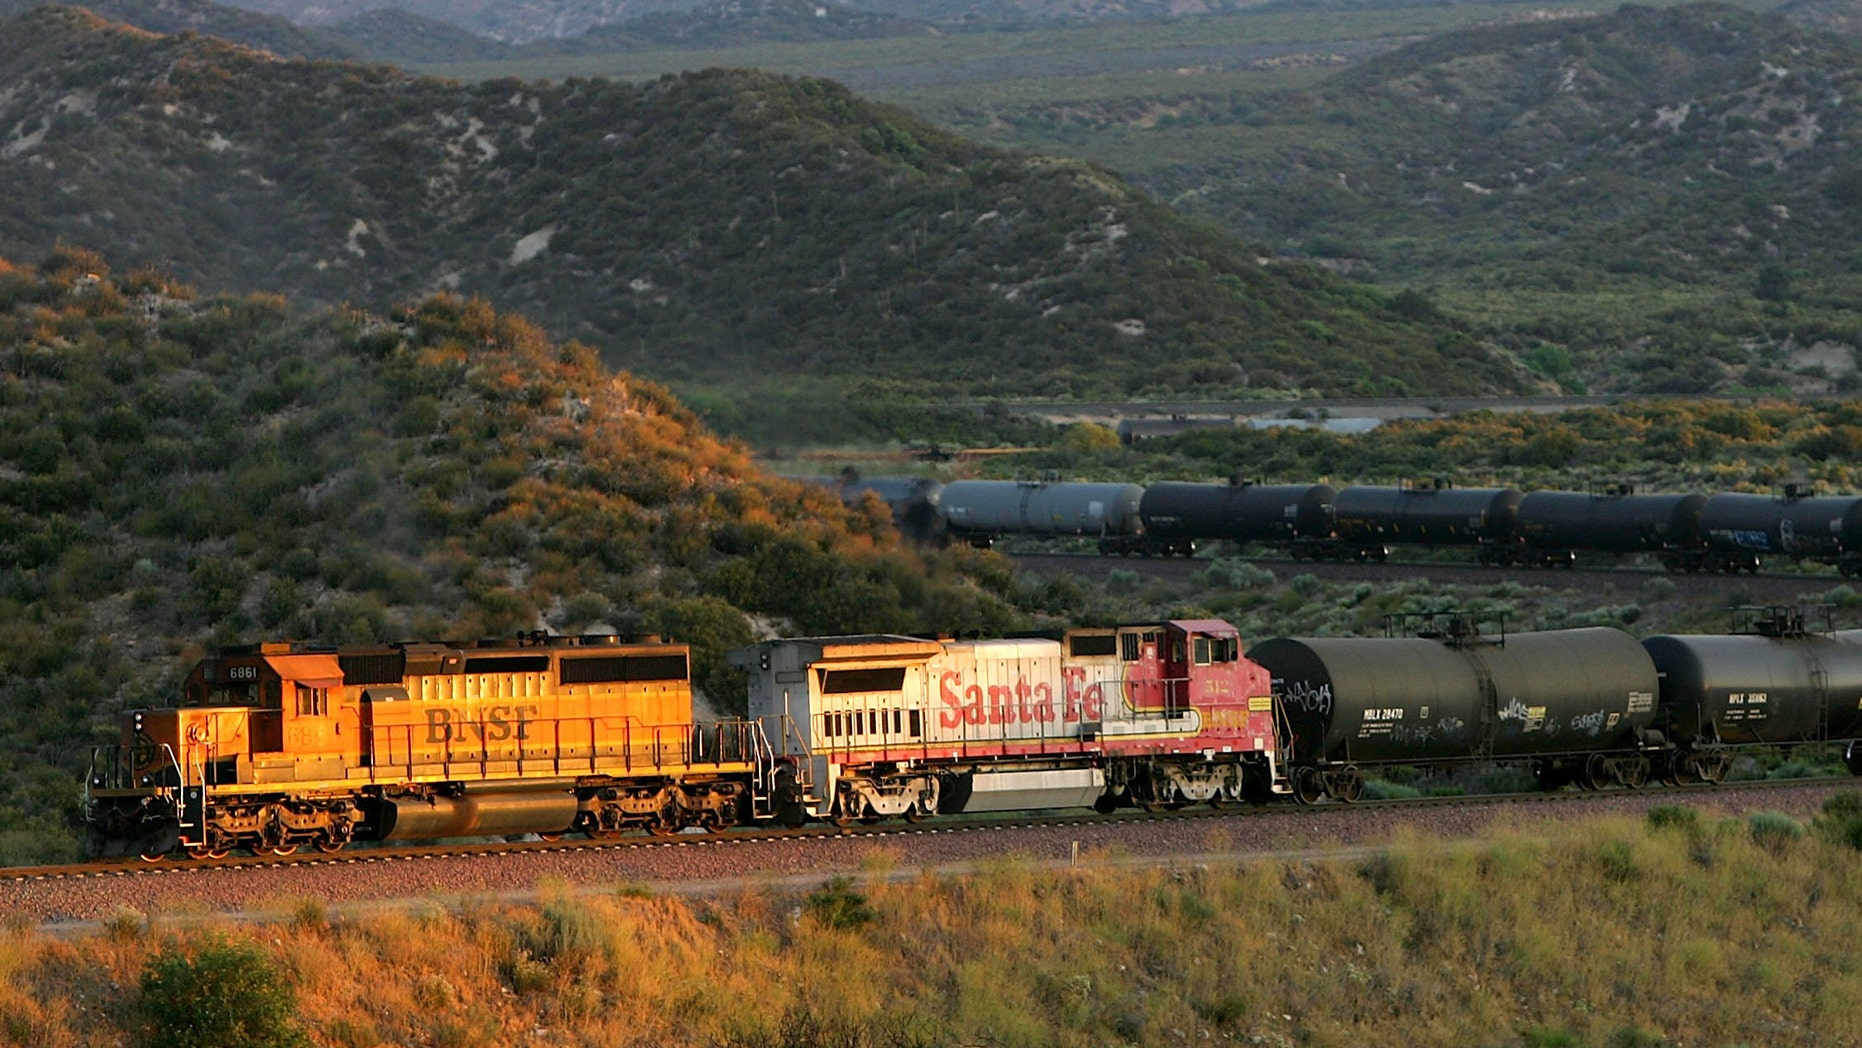 SAN BERNARDINO, CA - JULY 01: A freight train moves through Cajon Canyon near the San Andreas Rift Zone on July 1, 2006 near San Bernardino, California. The railway which crosses the San Andreas Fault and passes through the Cajon Pass is one of the busiest in the nation, transporting goods to and from the ports of Los Angeles and Long Beach. Scientists have warned that the southern end of the 800-mile-long San Andreas fault north and east of Los Angeles has built up immense pressure and could produce a massive earthquake at any time. Such a quake could produce a sudden lateral movement of 23 to 32 feet which would be would be among the largest ever recorded. (Photo by David McNew/Getty Images)